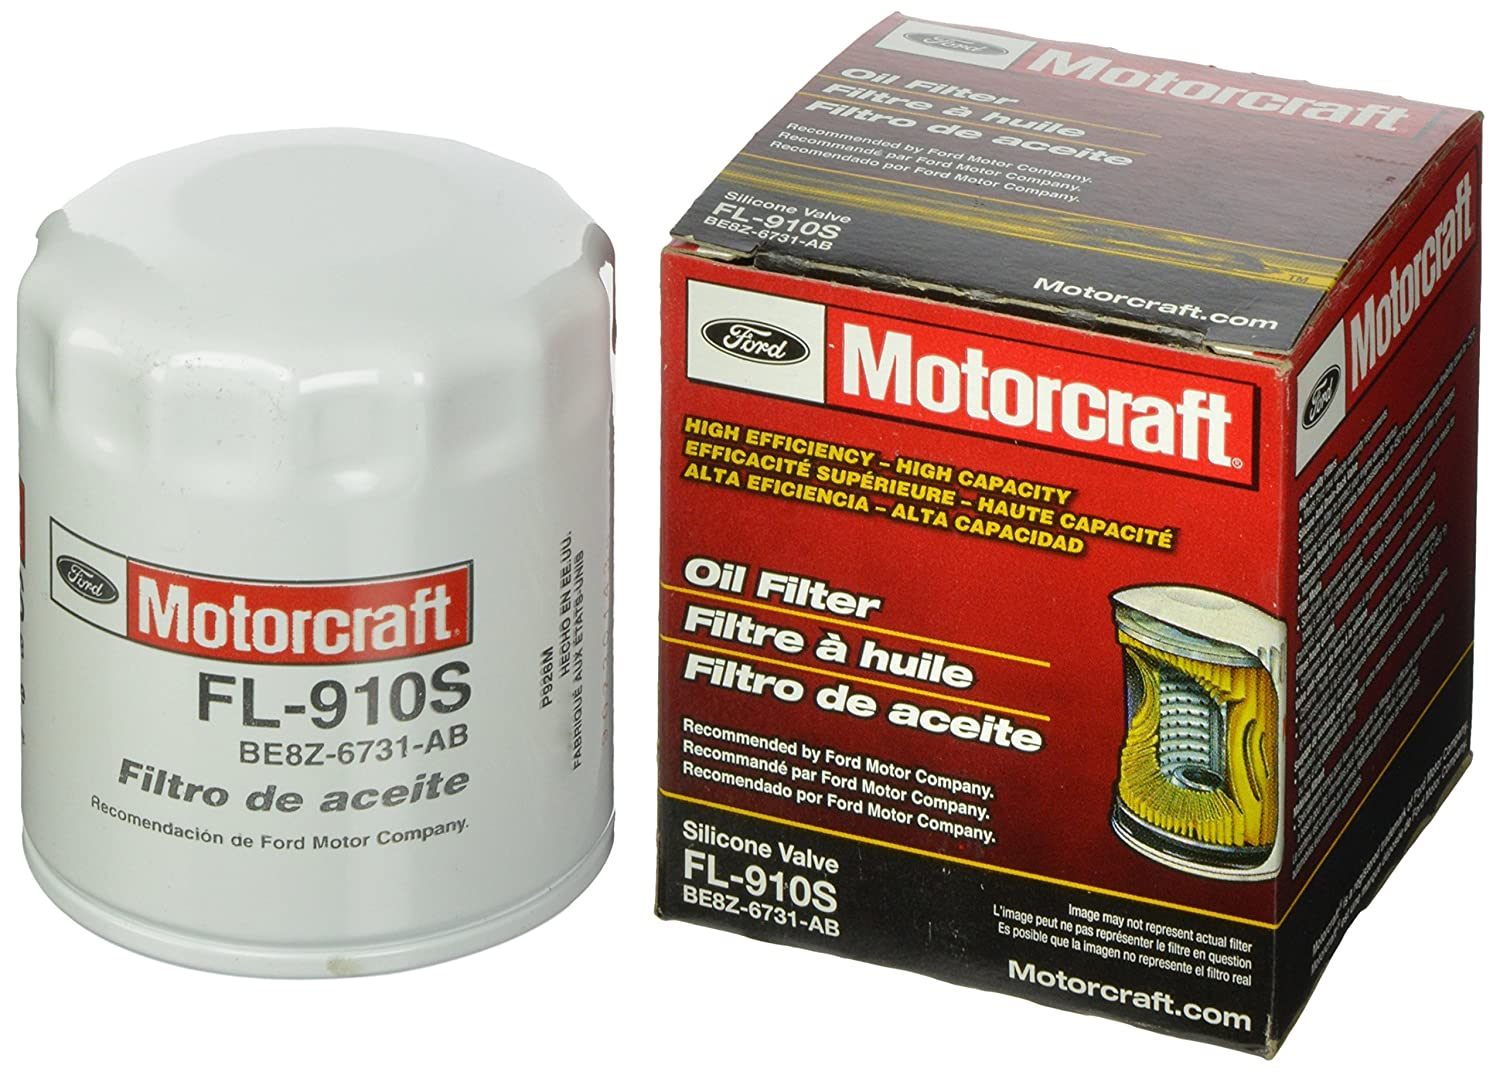 Motorcraft FL-910S Oil Filter